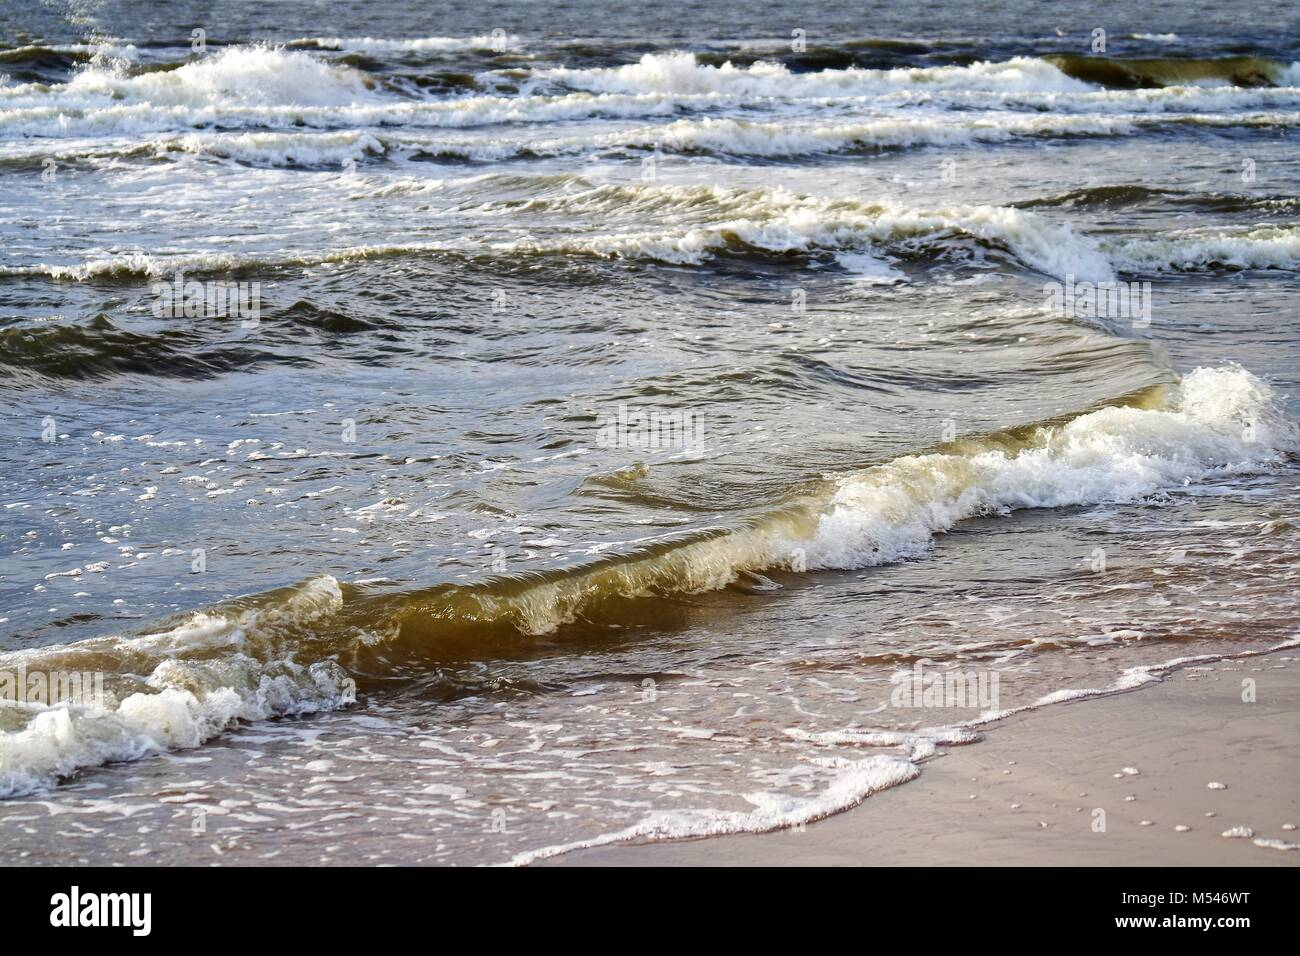 Gentle surf - Stock Image